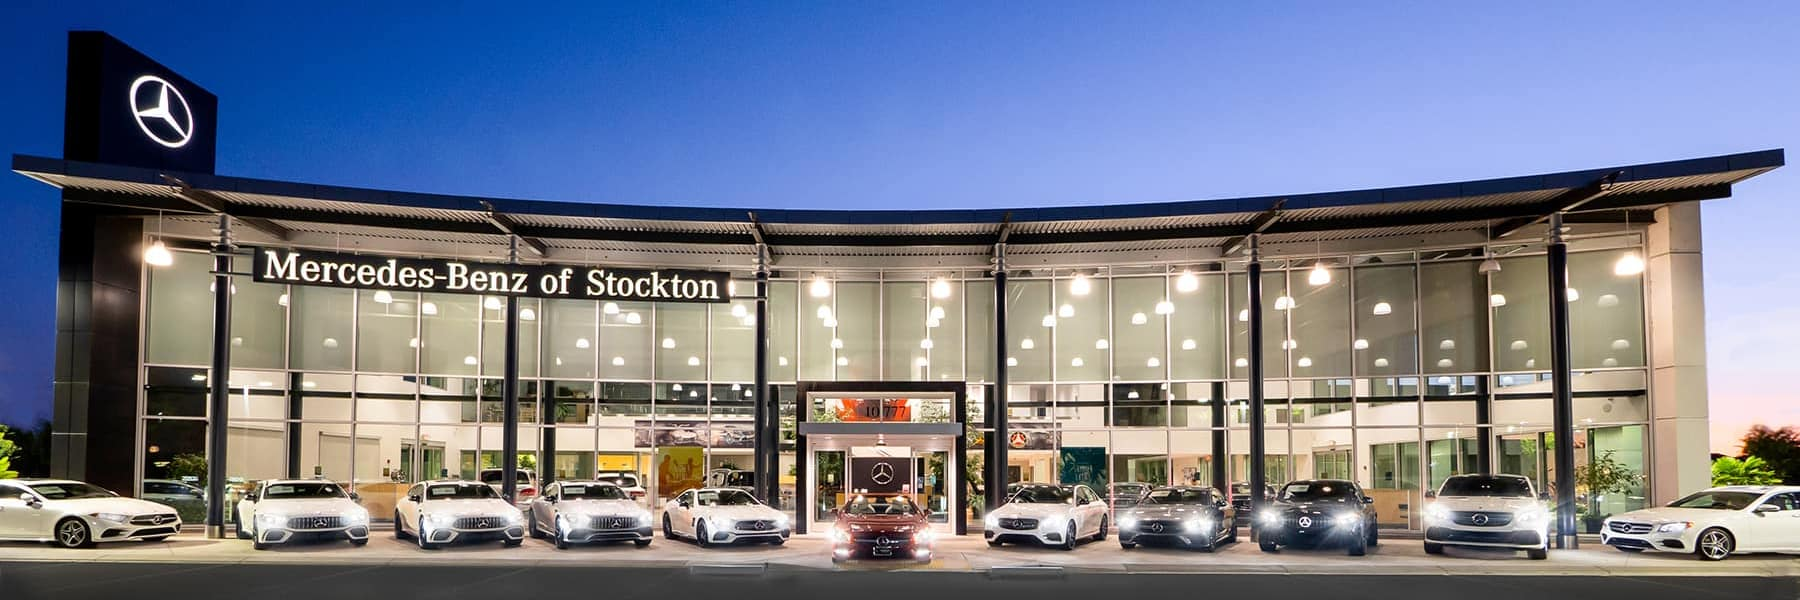 We may earn money from the links on this page. Welcome To Mercedes Benz Of Stockton